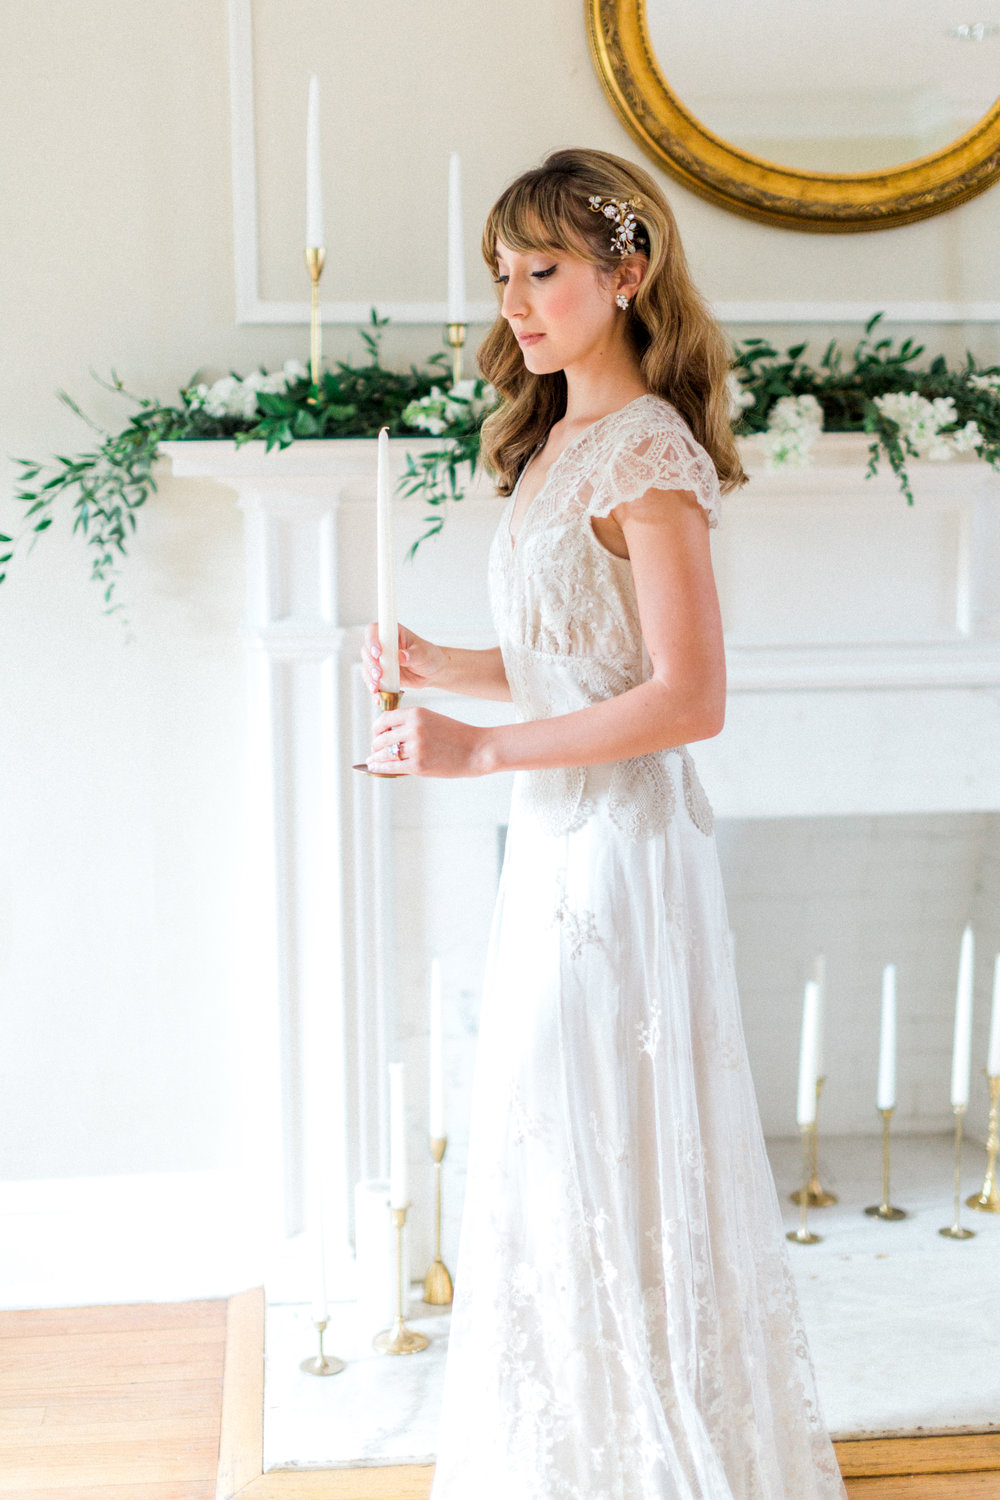 the cypress grove estate house in orlando florida, styled wedding bridal photo in wedding dress